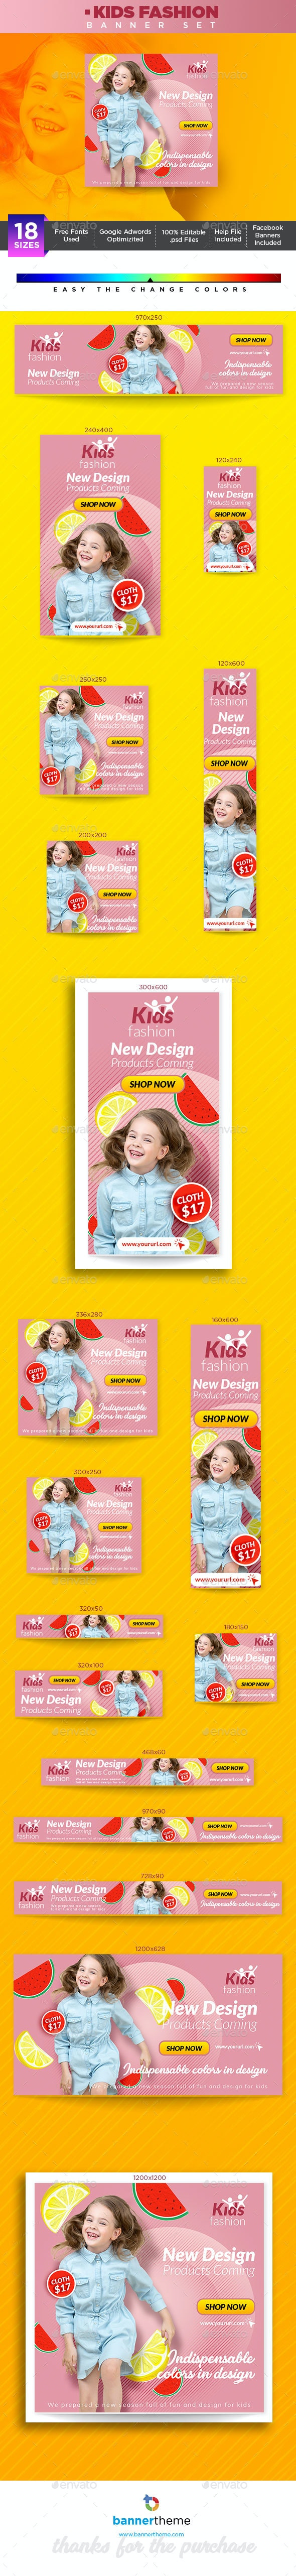 Kids Fashion Banner - Banners & Ads Web Elements